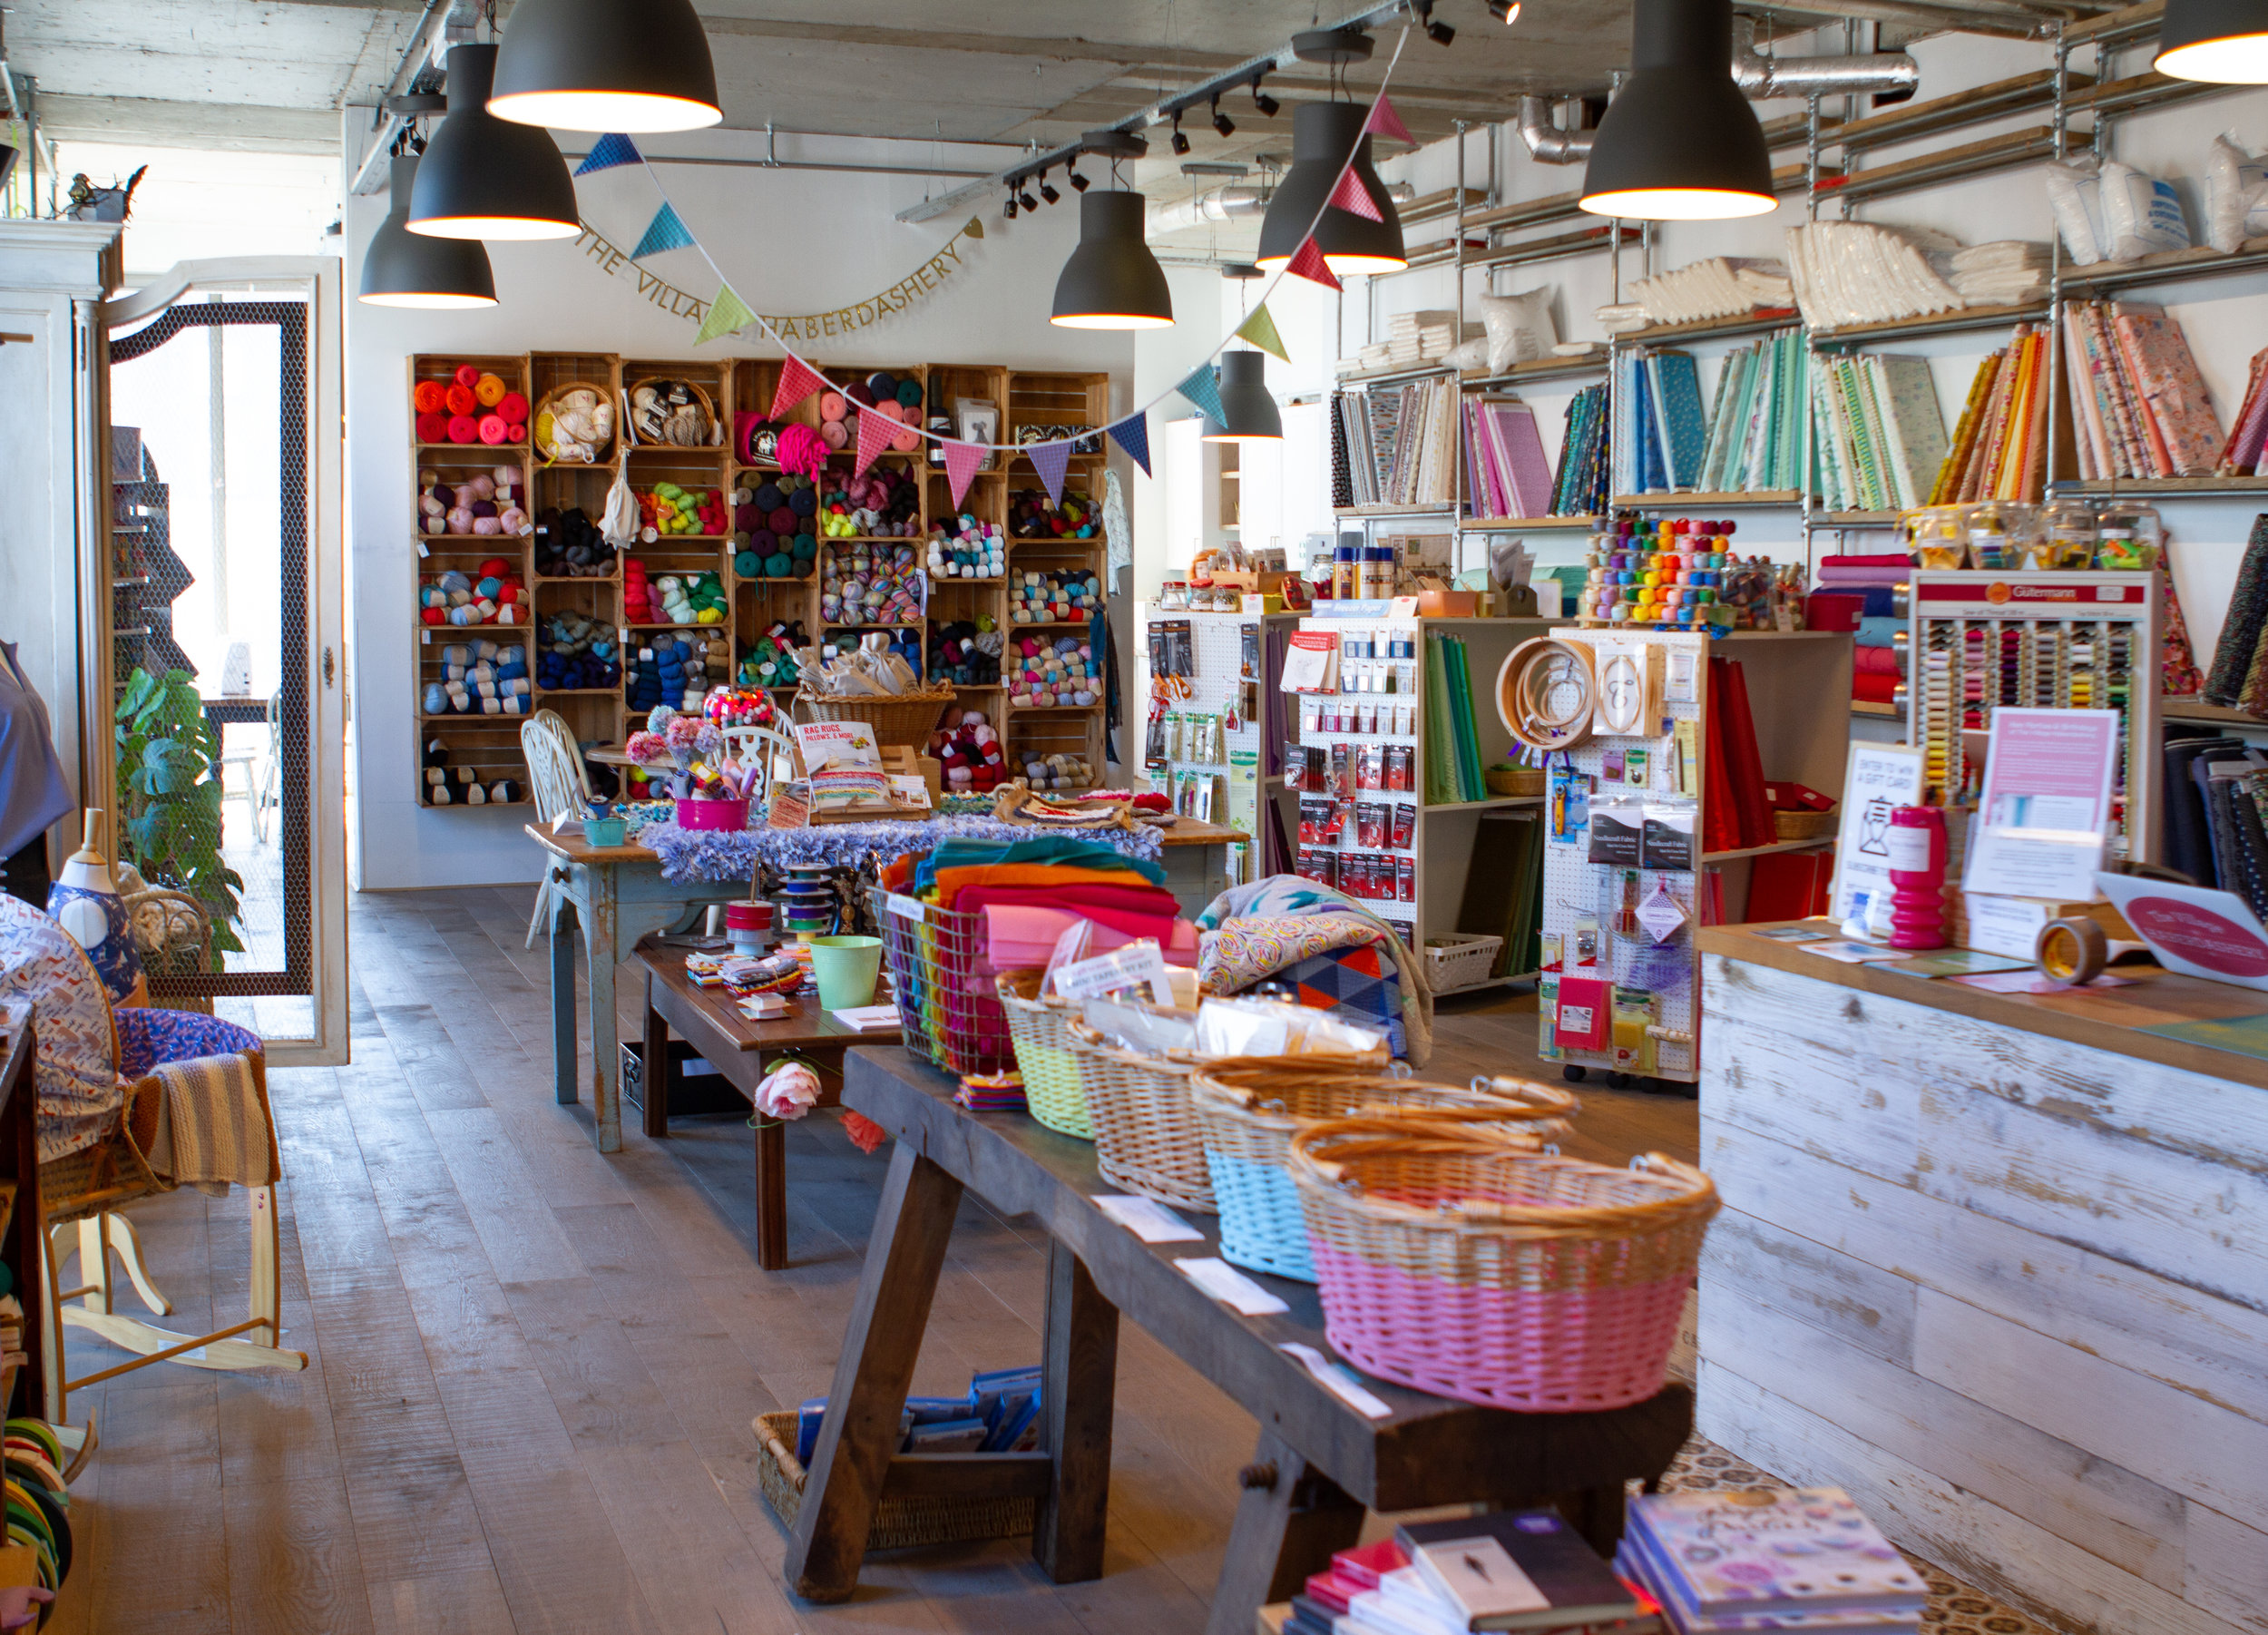 A colourful cornucopia of craft awaits at The Village Haberdashery